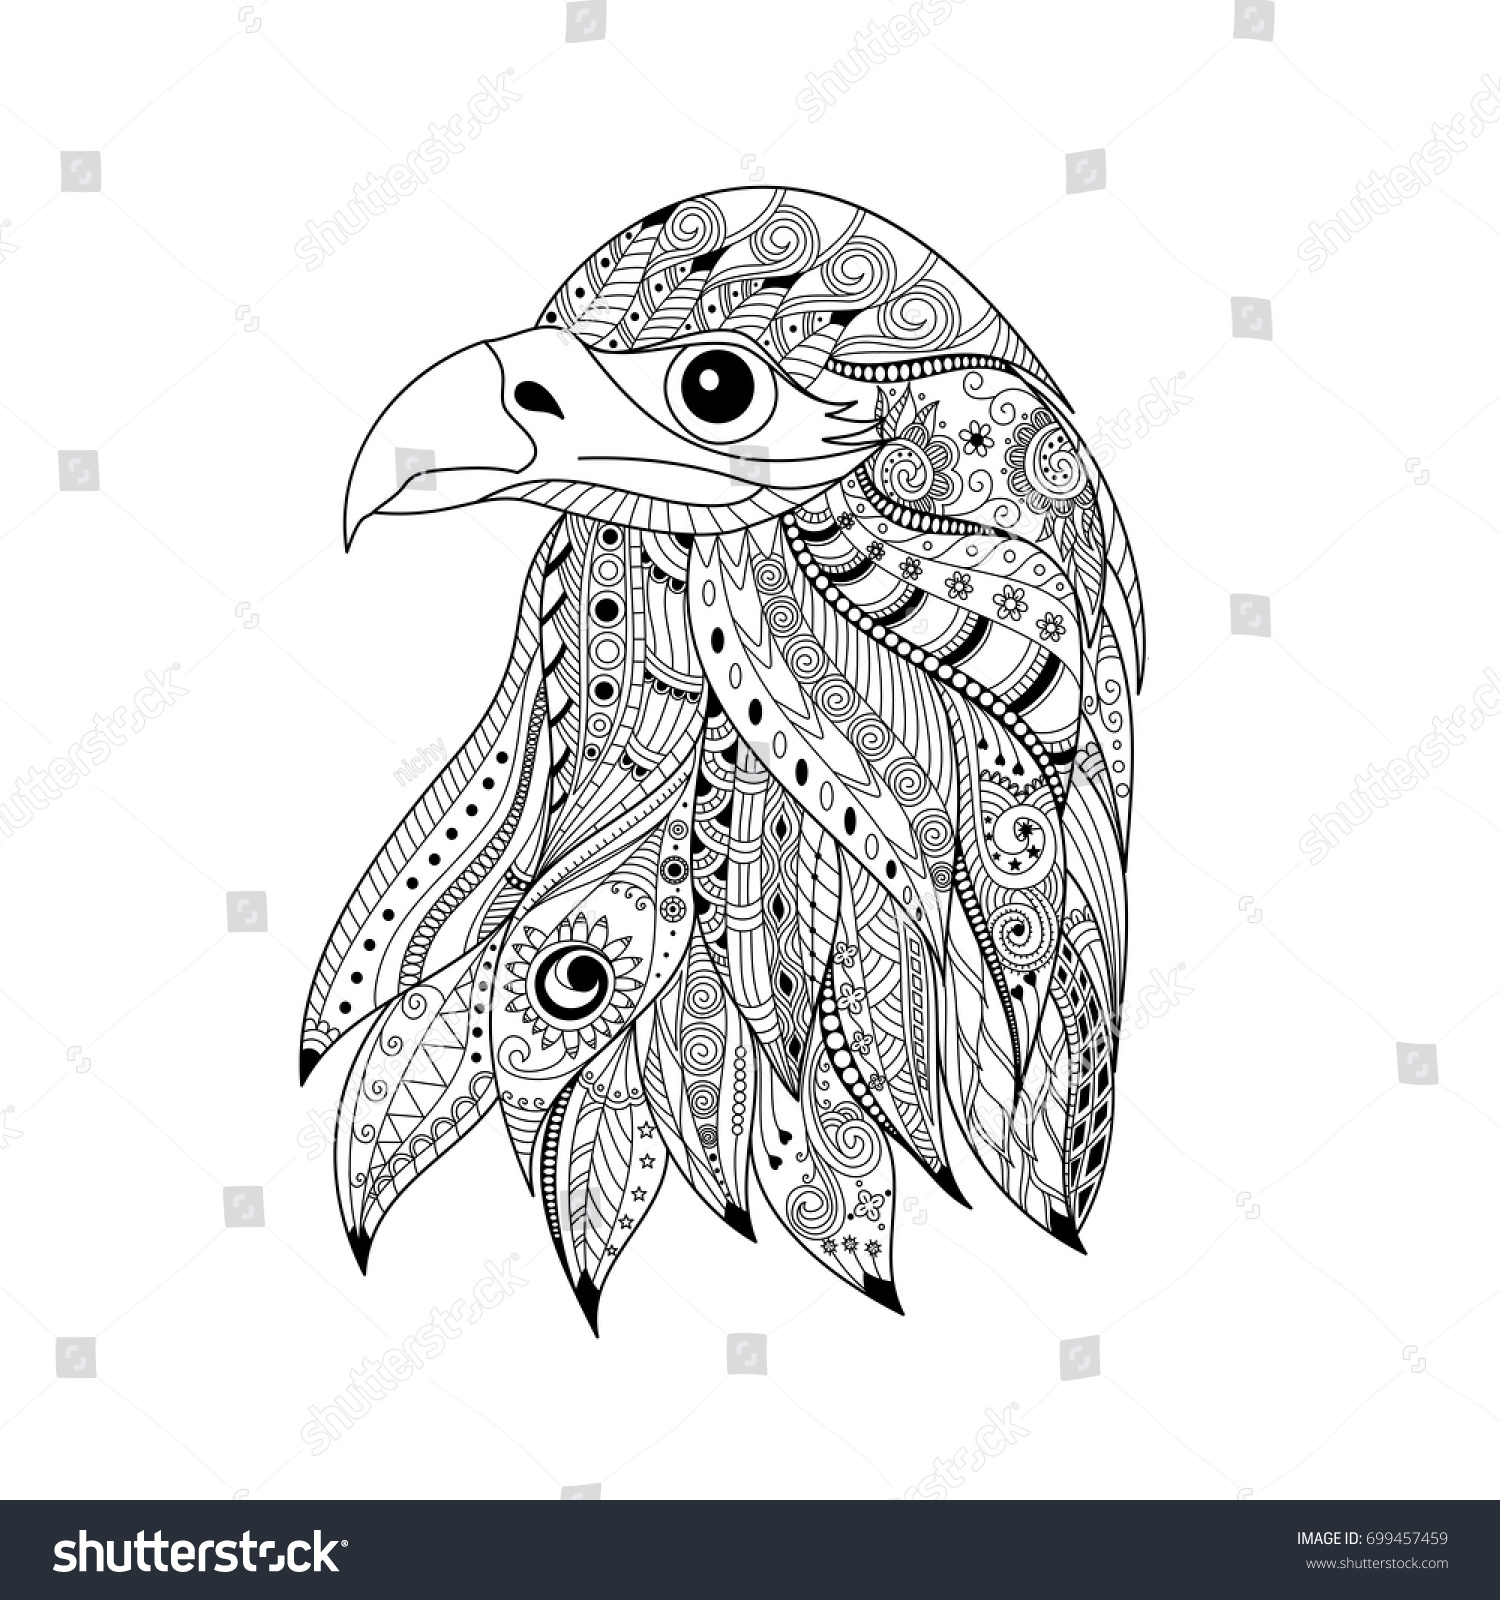 Hand Drawn Zentangle Eagle Head For Adult And Children Coloring Book Pagevector Illustration